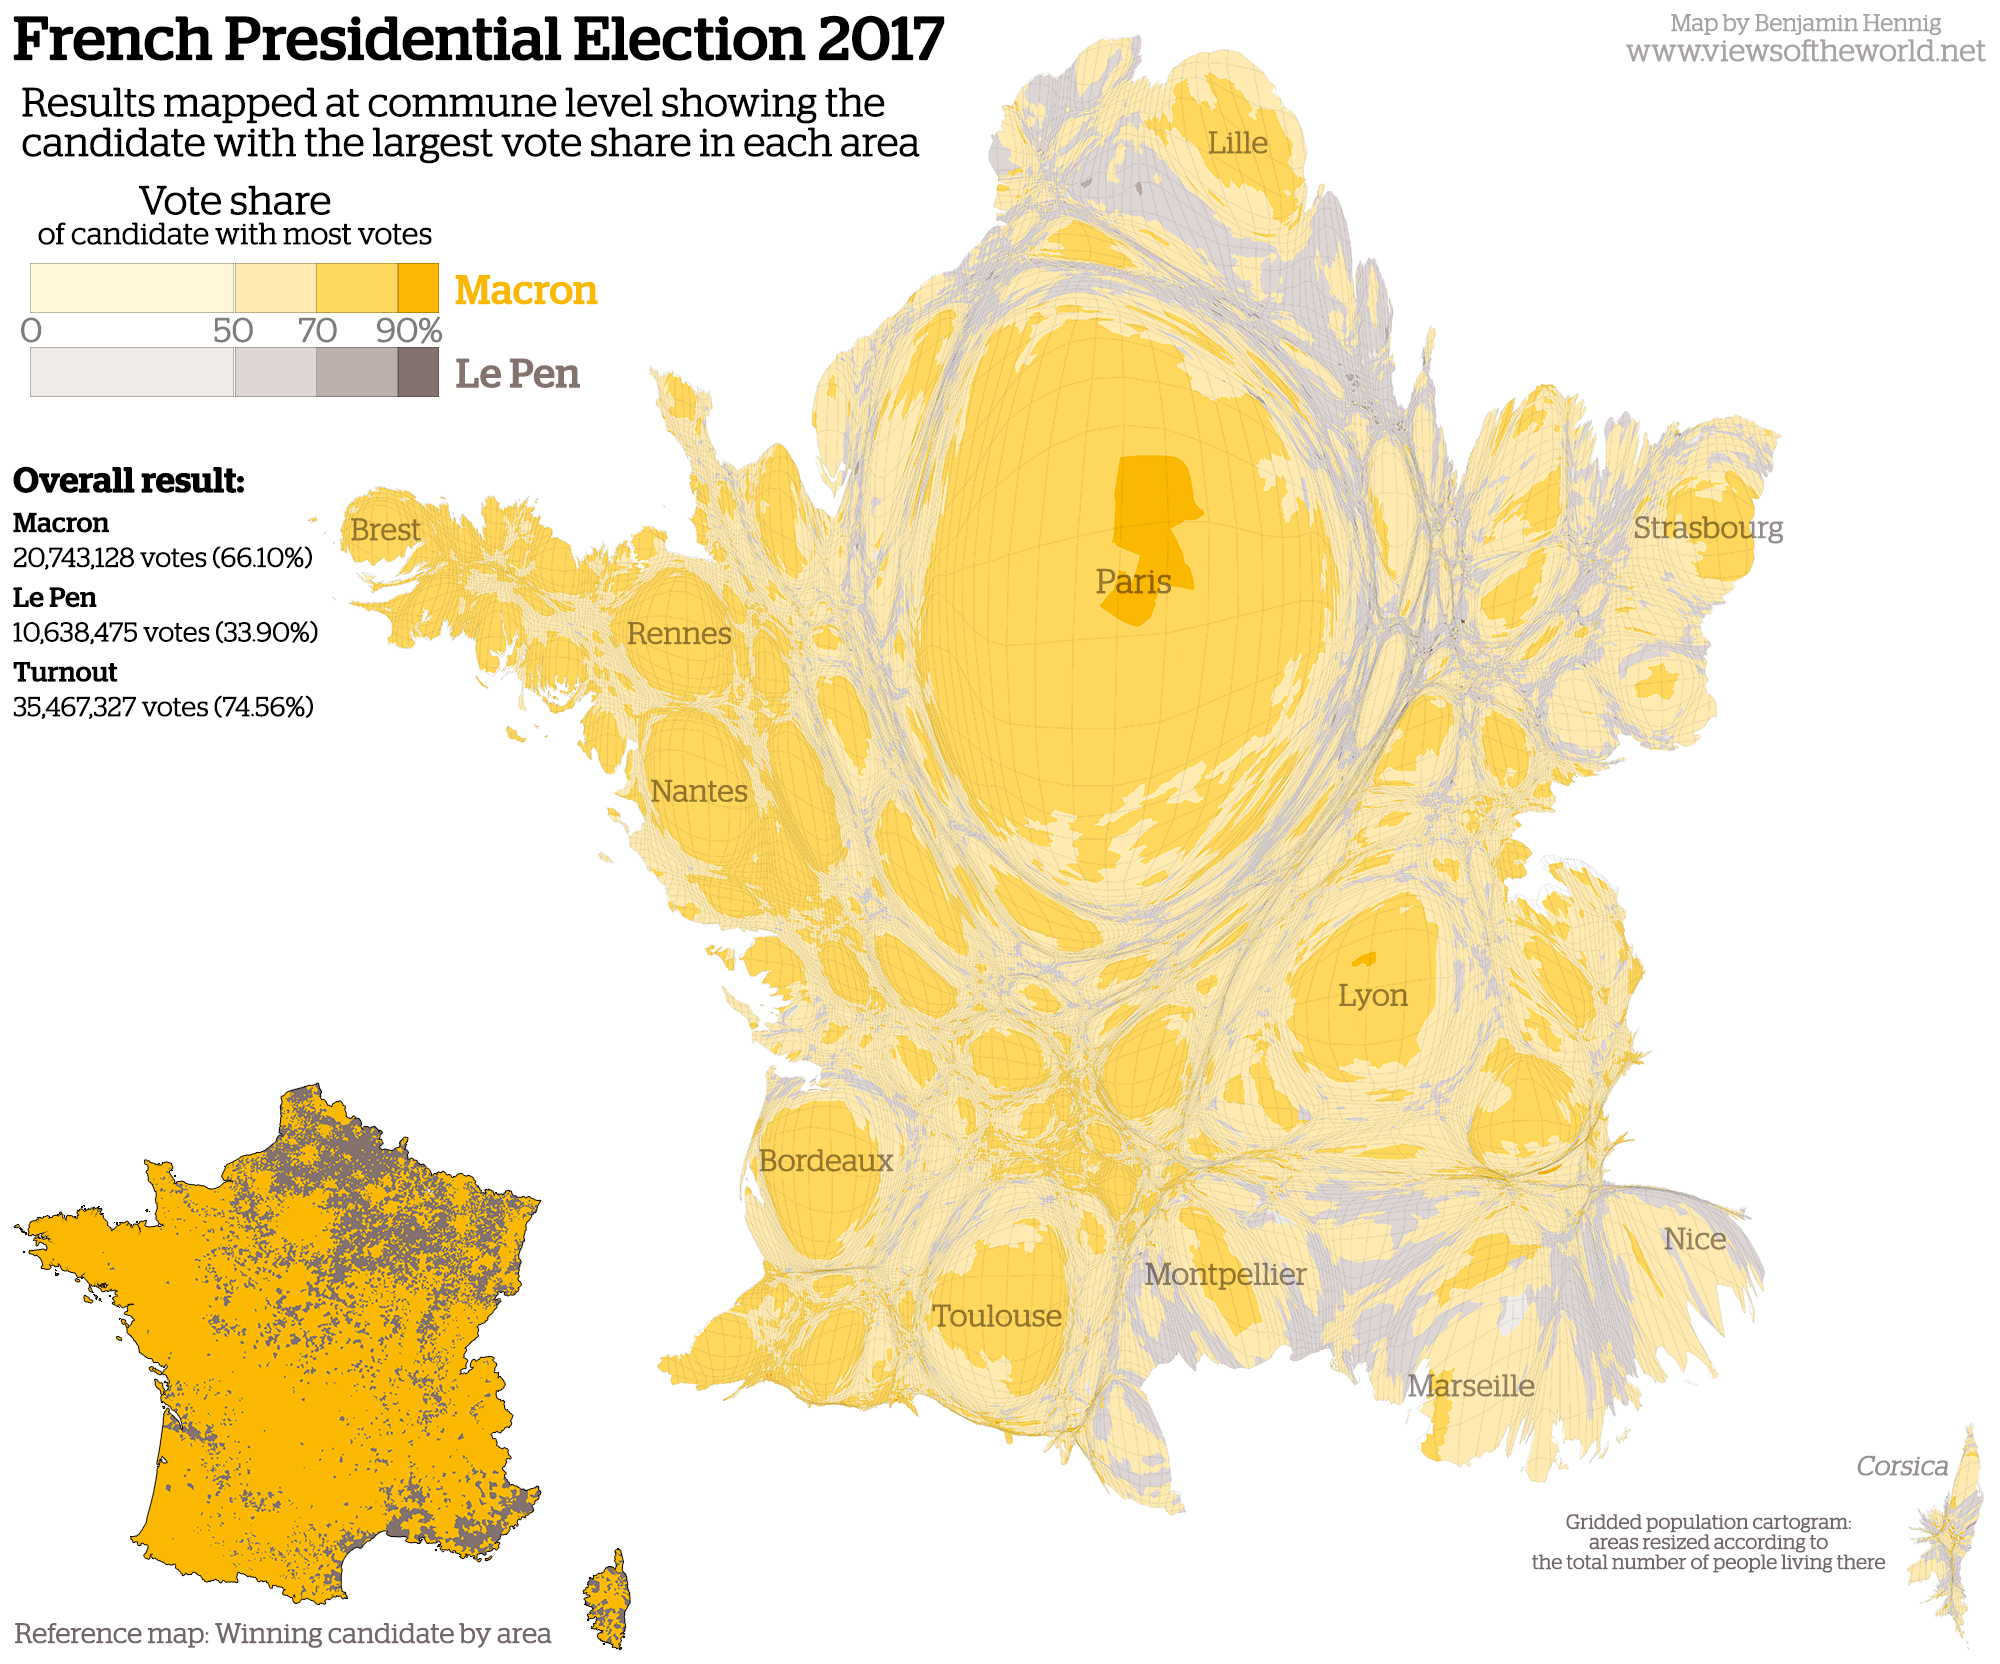 Gridded Population Cartogram of the French Presidential Election 2017